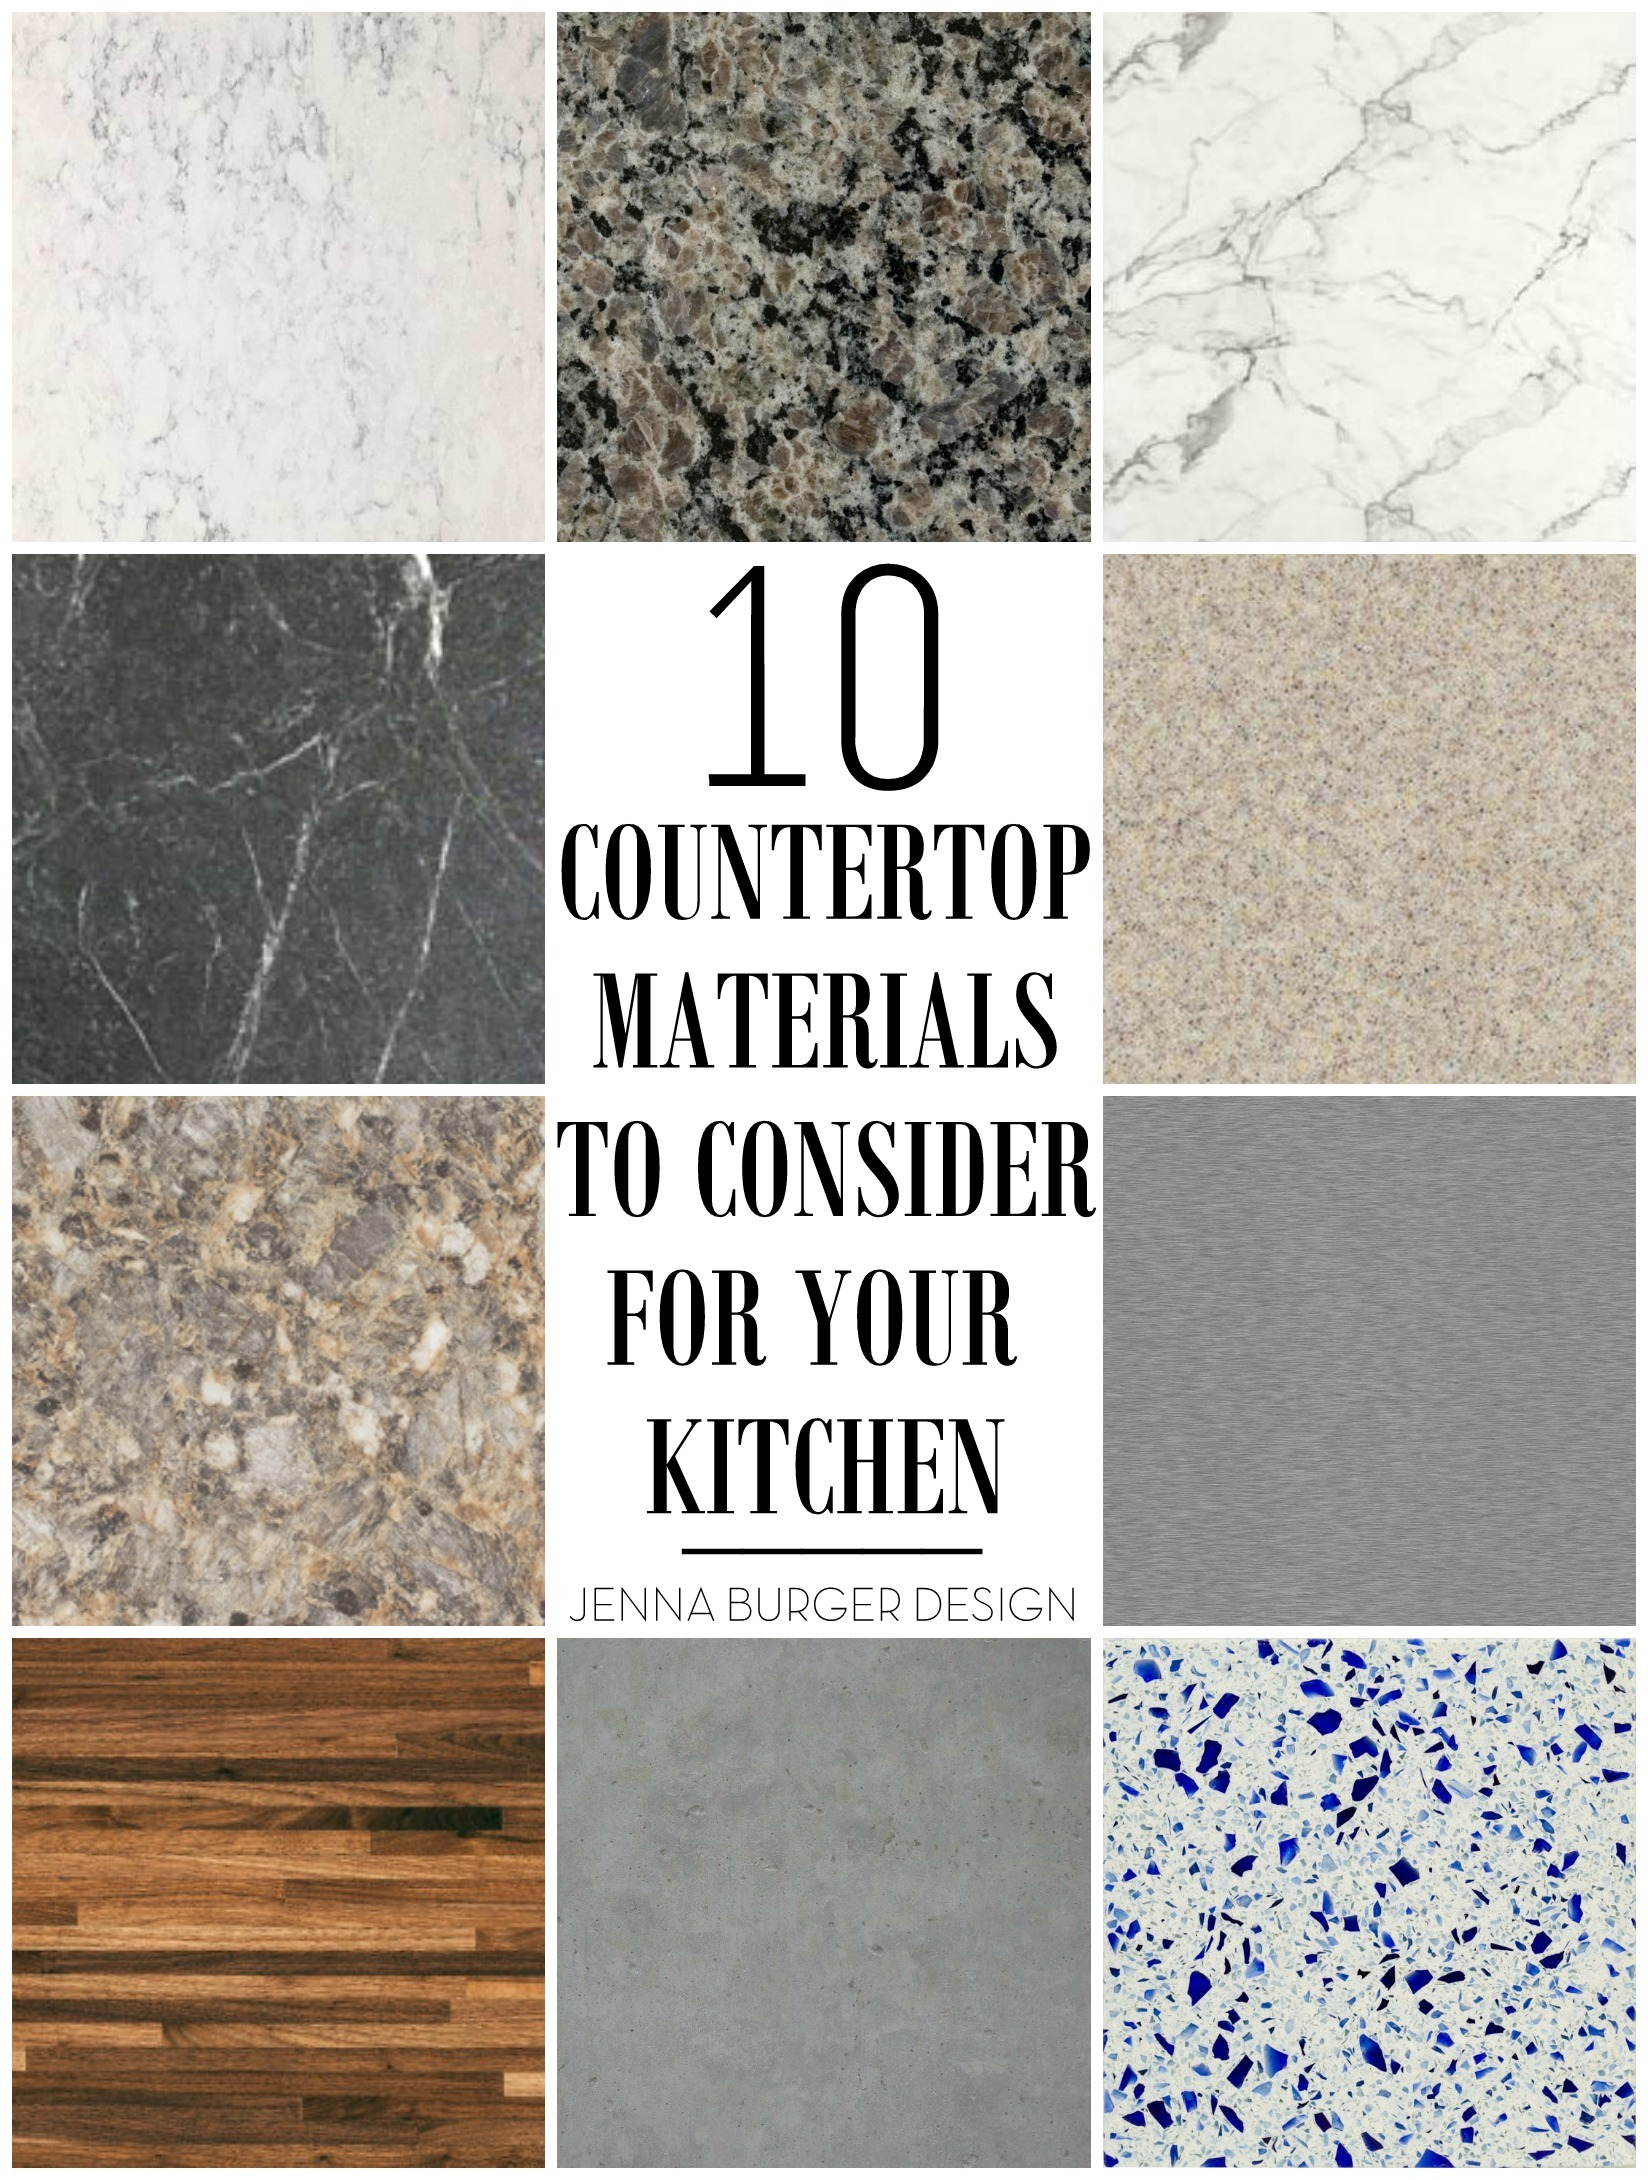 material includes countertop quartz promotion promo countertops materials